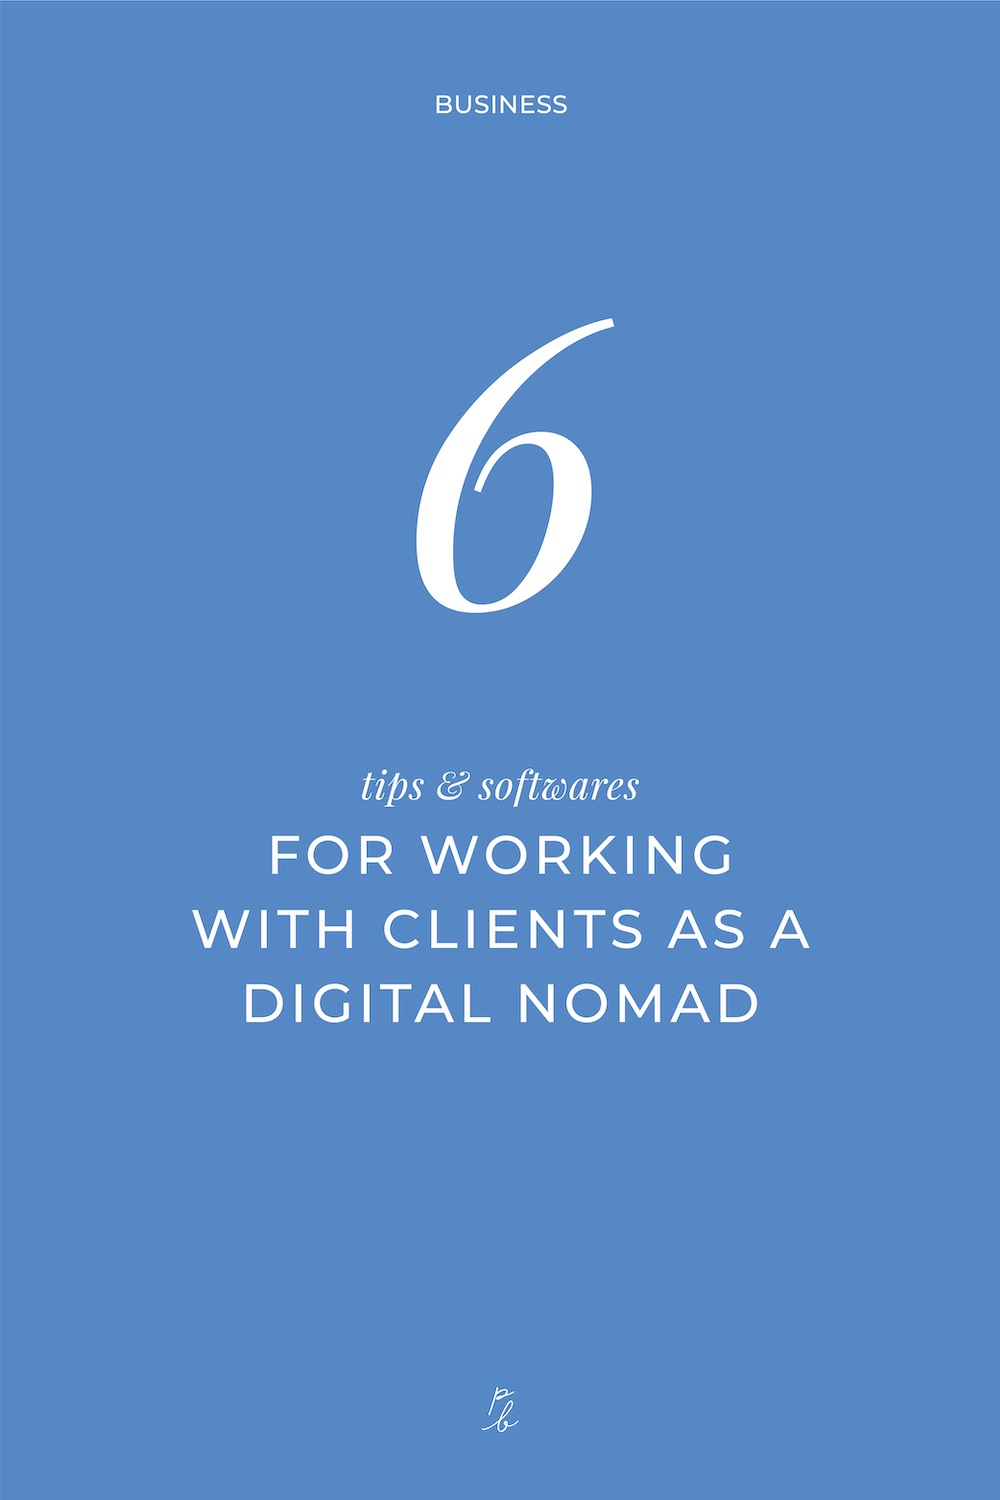 3-6 tips and softwares for working with clients as a digital nomad.jpg